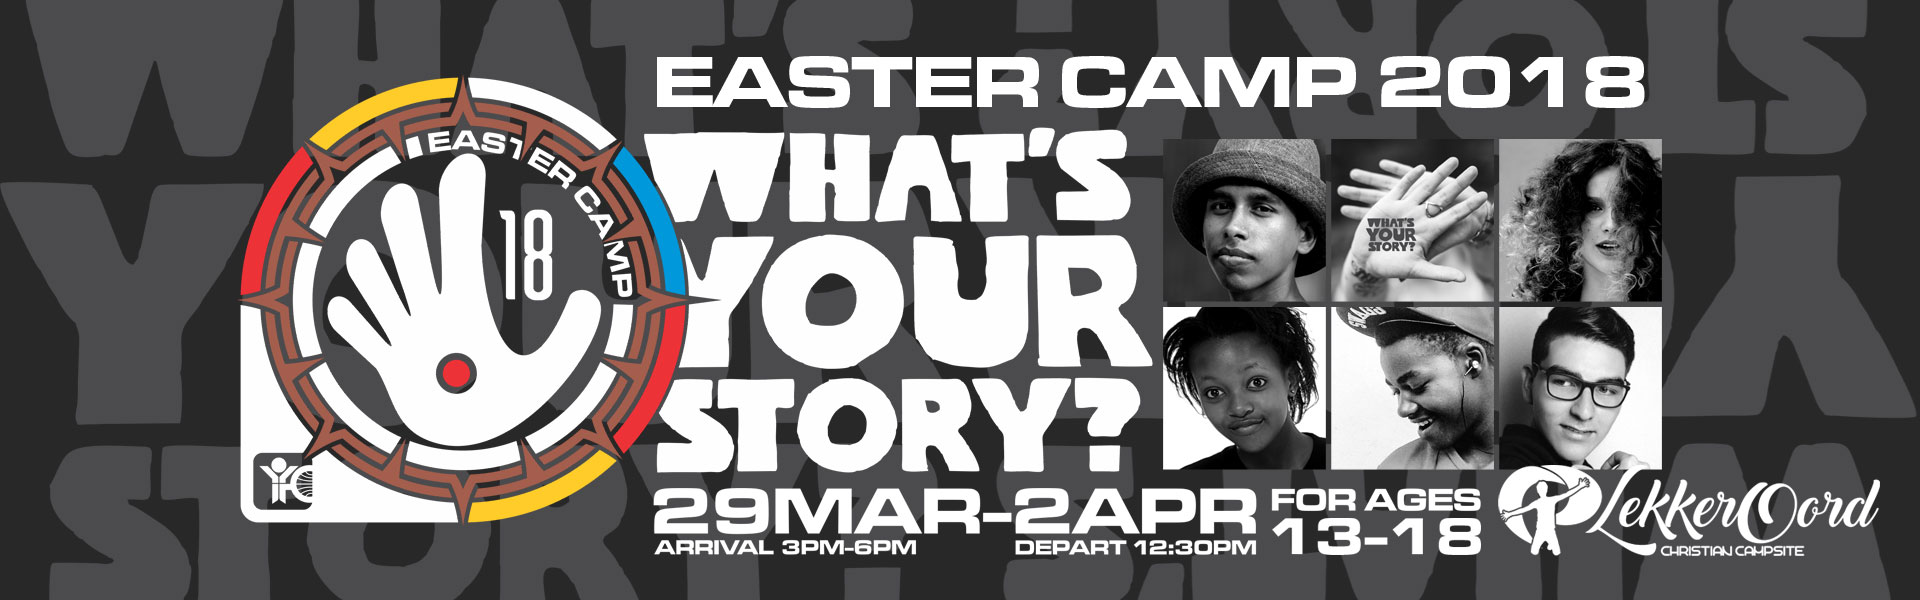 Easter Camp 2018 Banner #What'sYourStory